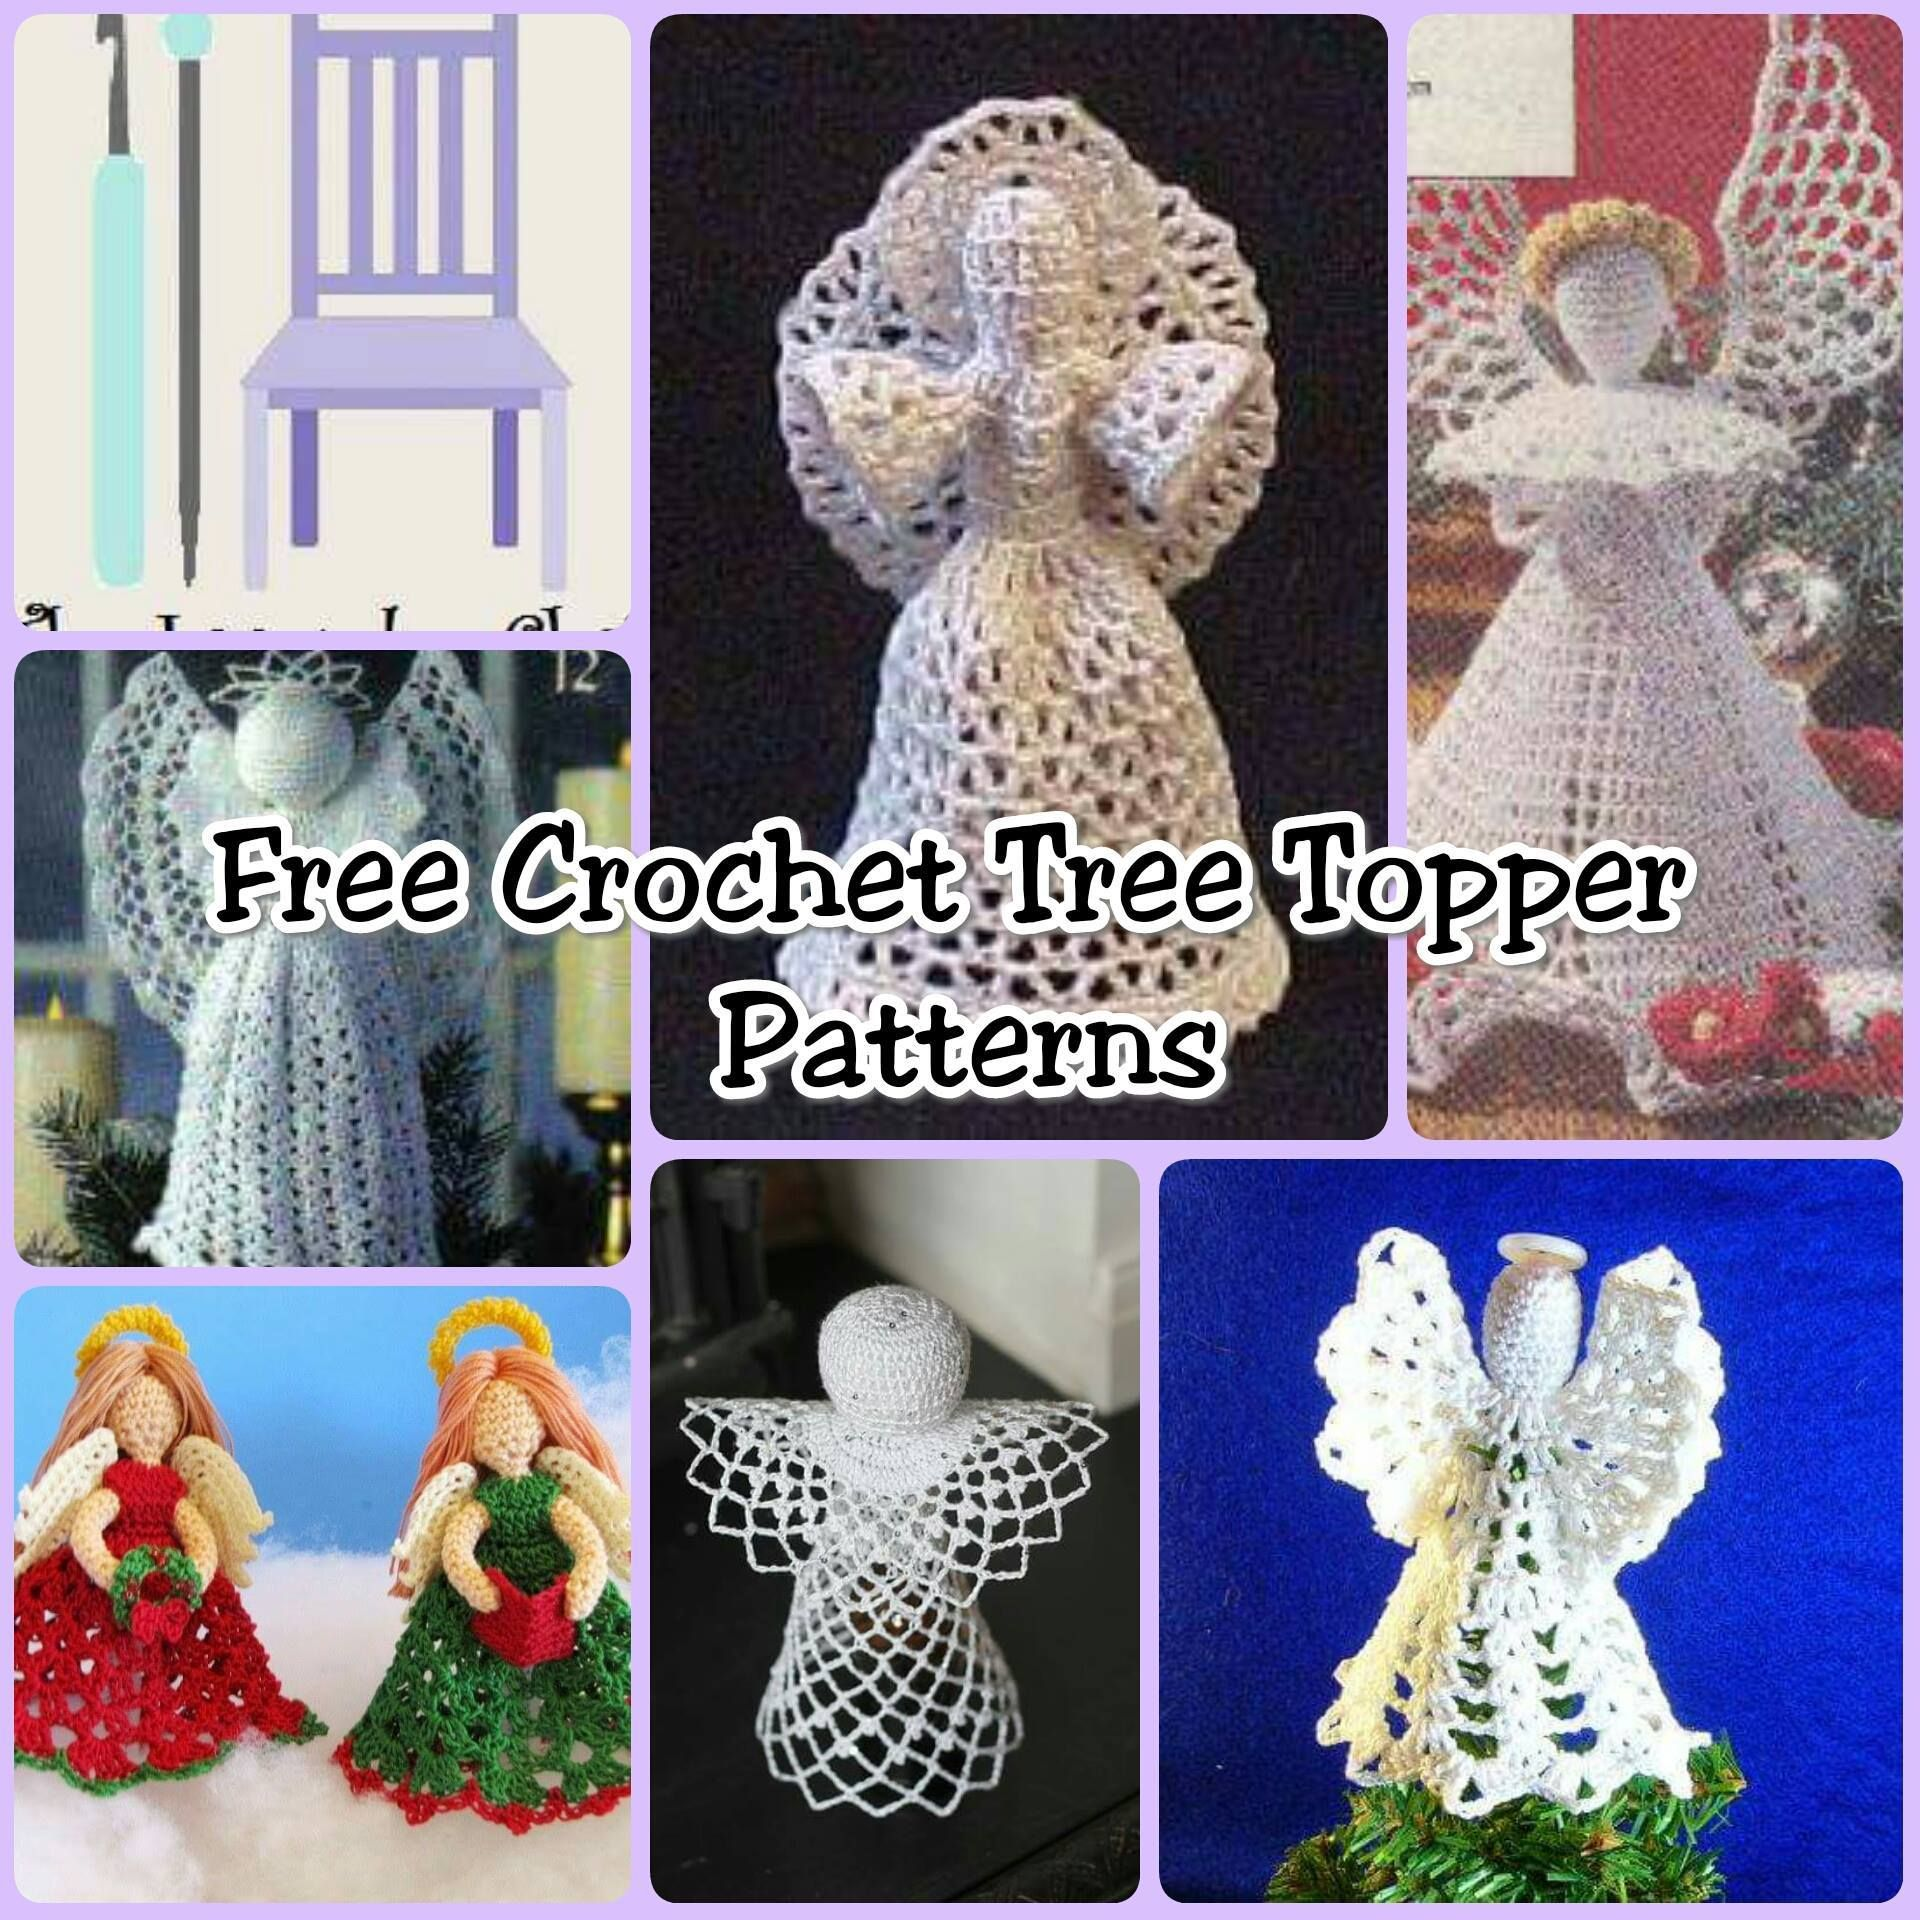 Free crochet tree topper patterns the lavender chair the whoot free crochet tree topper patterns the lavender chair bankloansurffo Choice Image